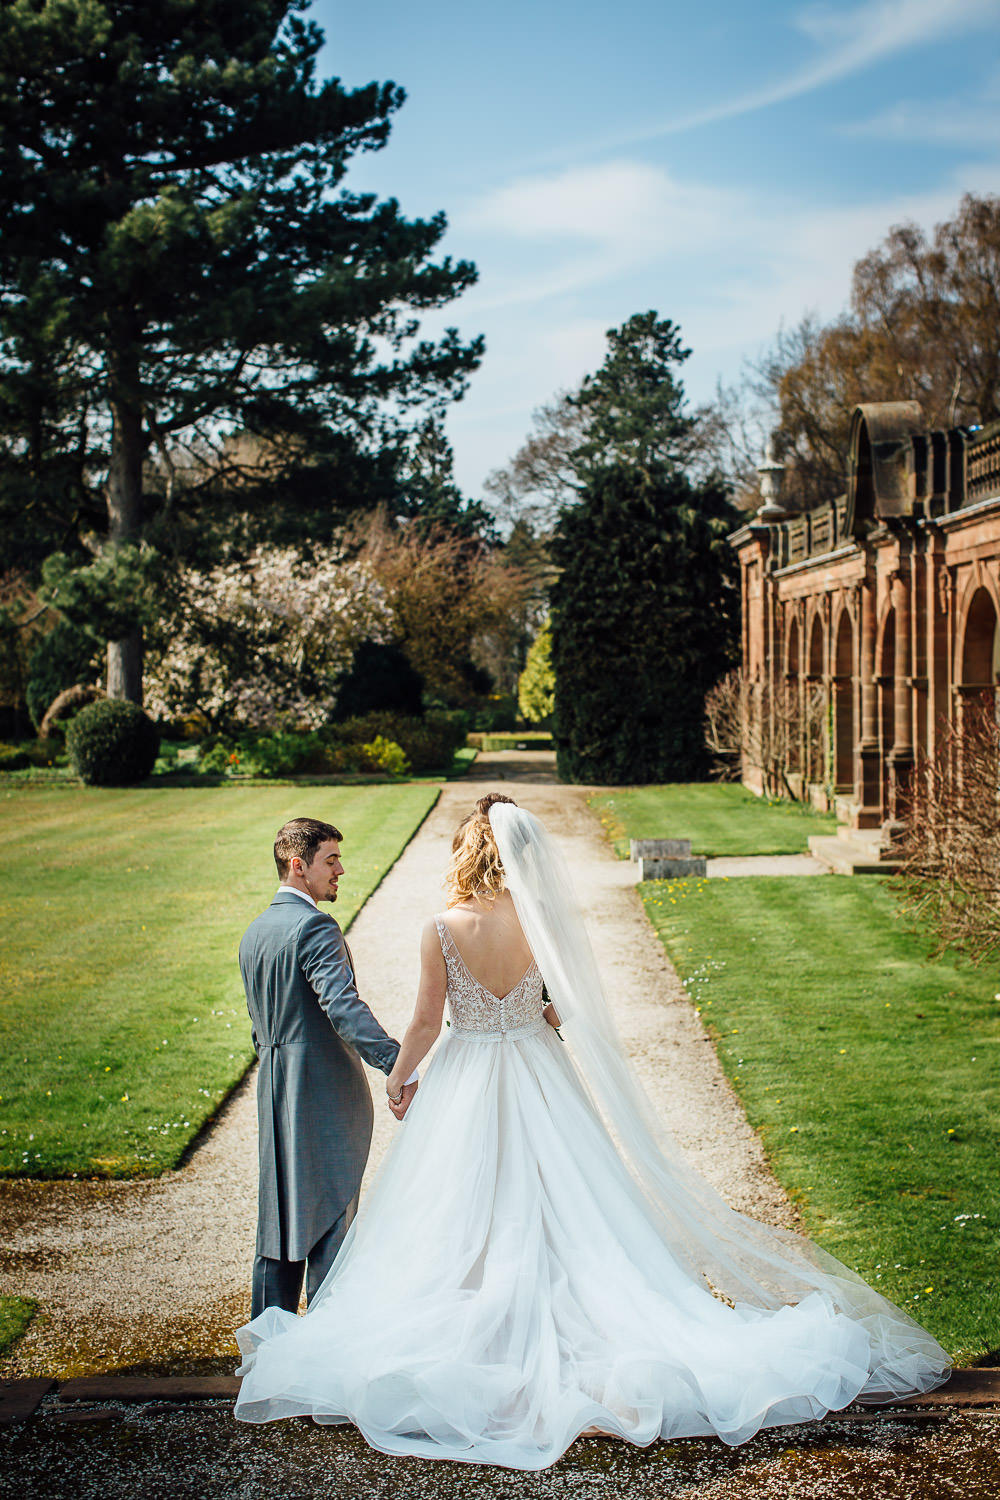 Bride and Groom walking through gardens of Thornton Manor in the Wirral